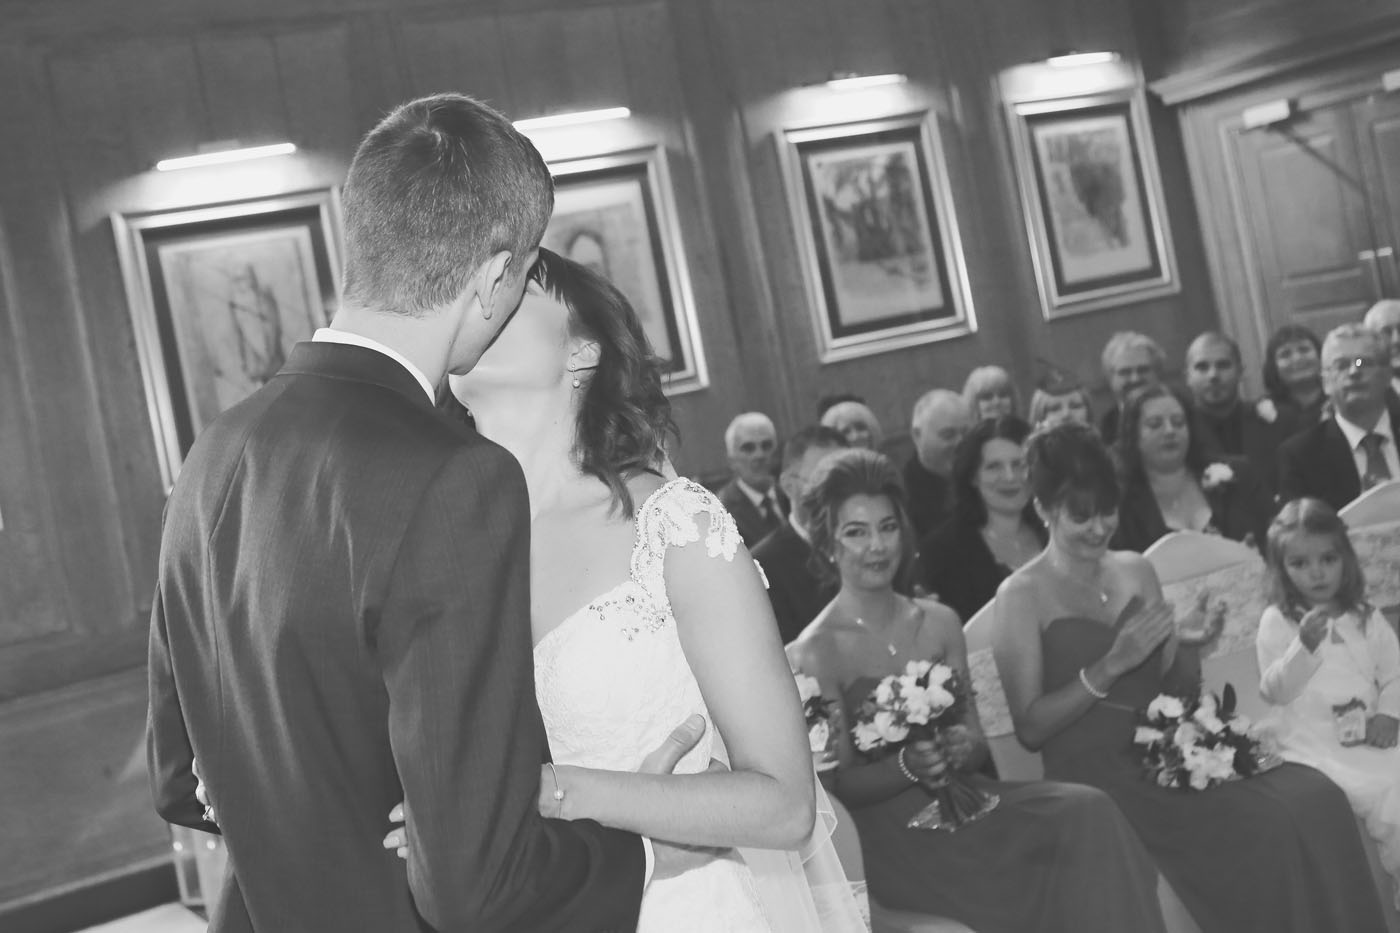 SteveHillman Wedding Photography Marie And Nick Married At Abbey House Hotel Barrow In Furness